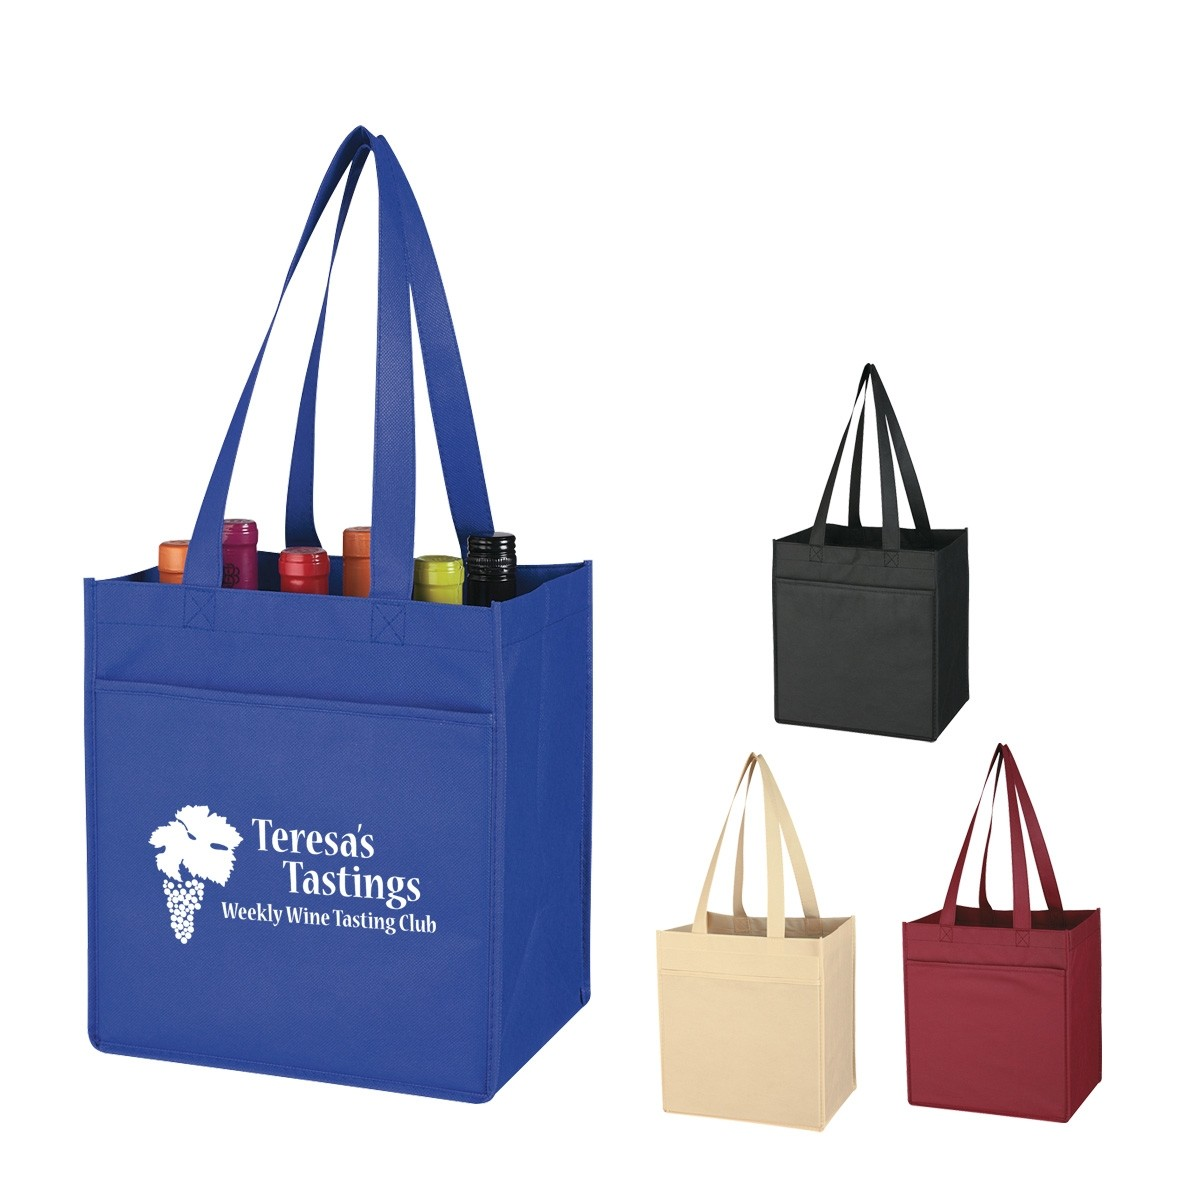 Promotional Non-Woven 6 Bottle Wine Tote Bag,Promotional Two Tone Shopping Tote Bags Supplier And Wholesaler